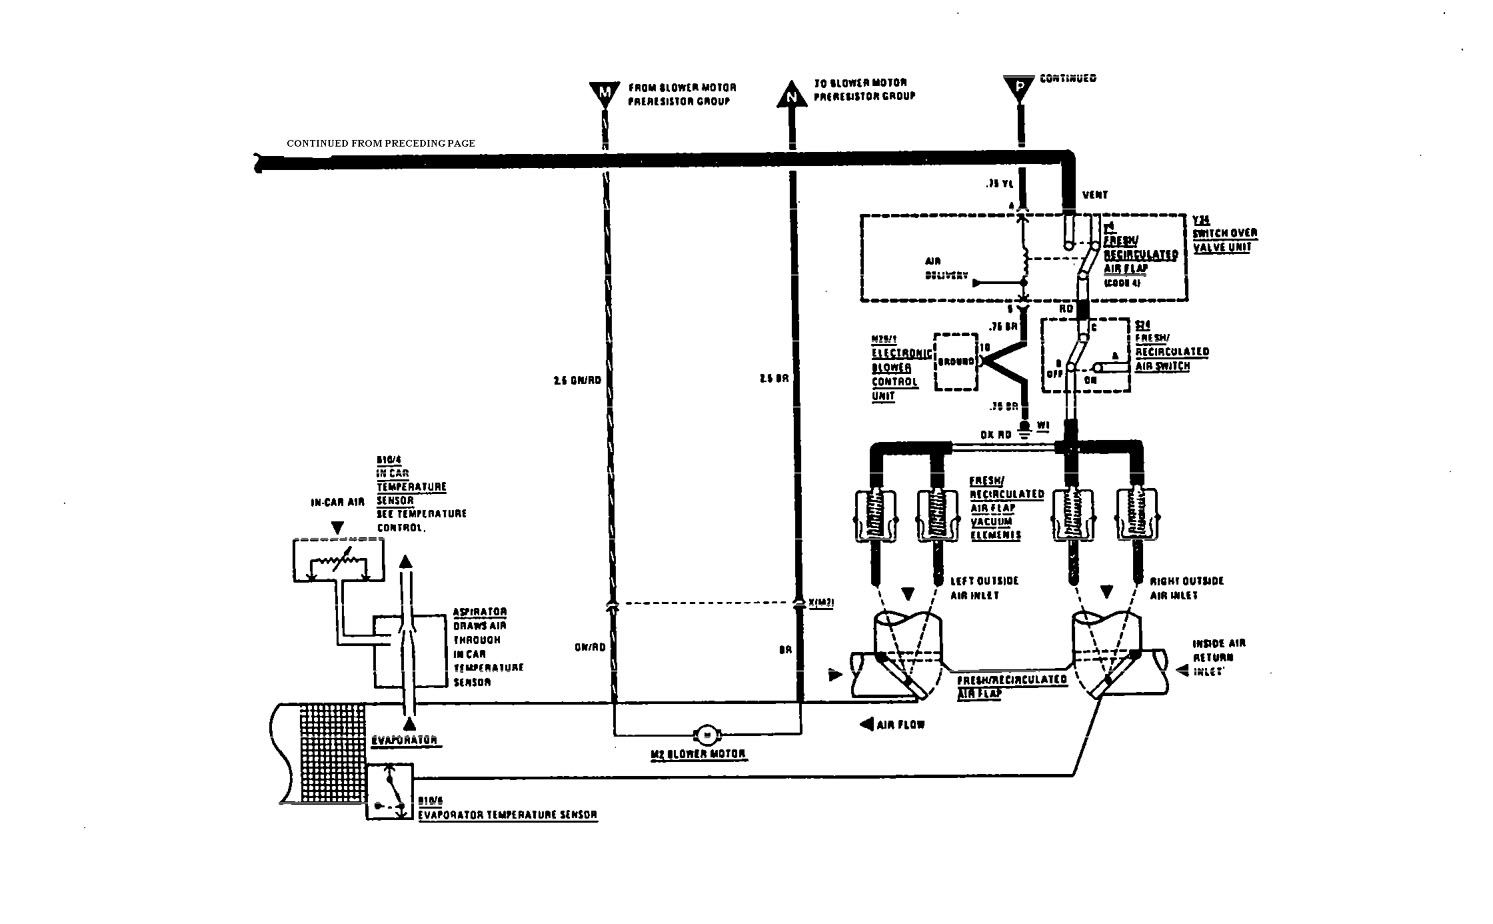 mercedes-benz 560sec  1990 - 1991  - wiring diagrams - hvac controls